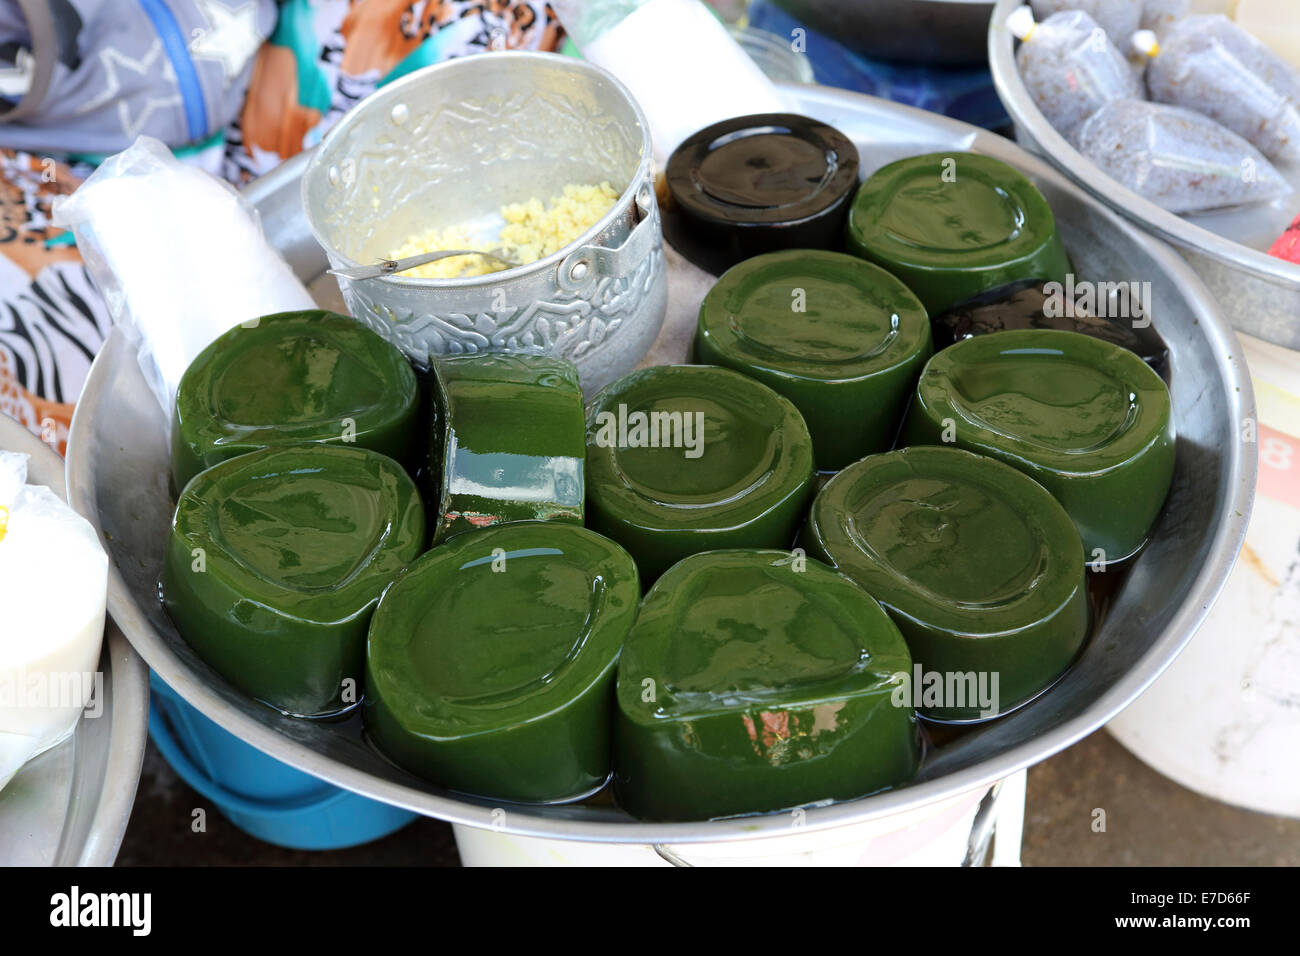 Foodstuffs for sale at a stall at the local market the Mekong River in Sa Dec, Vietnam. - Stock Image